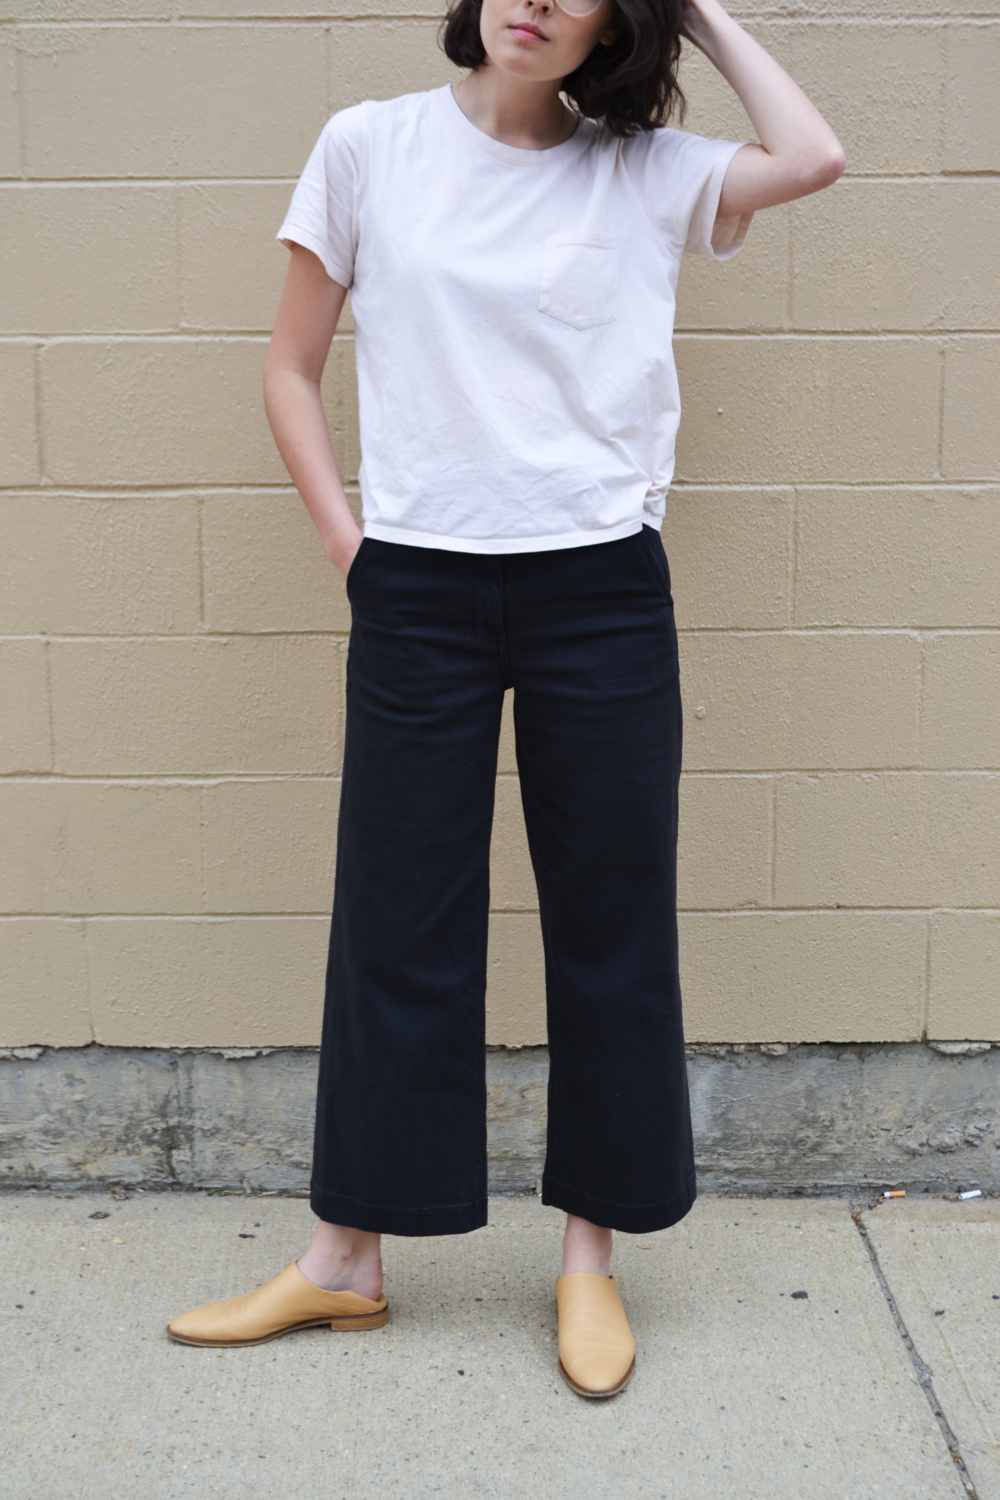 Everlane | The Wide Leg Crop Pant in  True Black $68